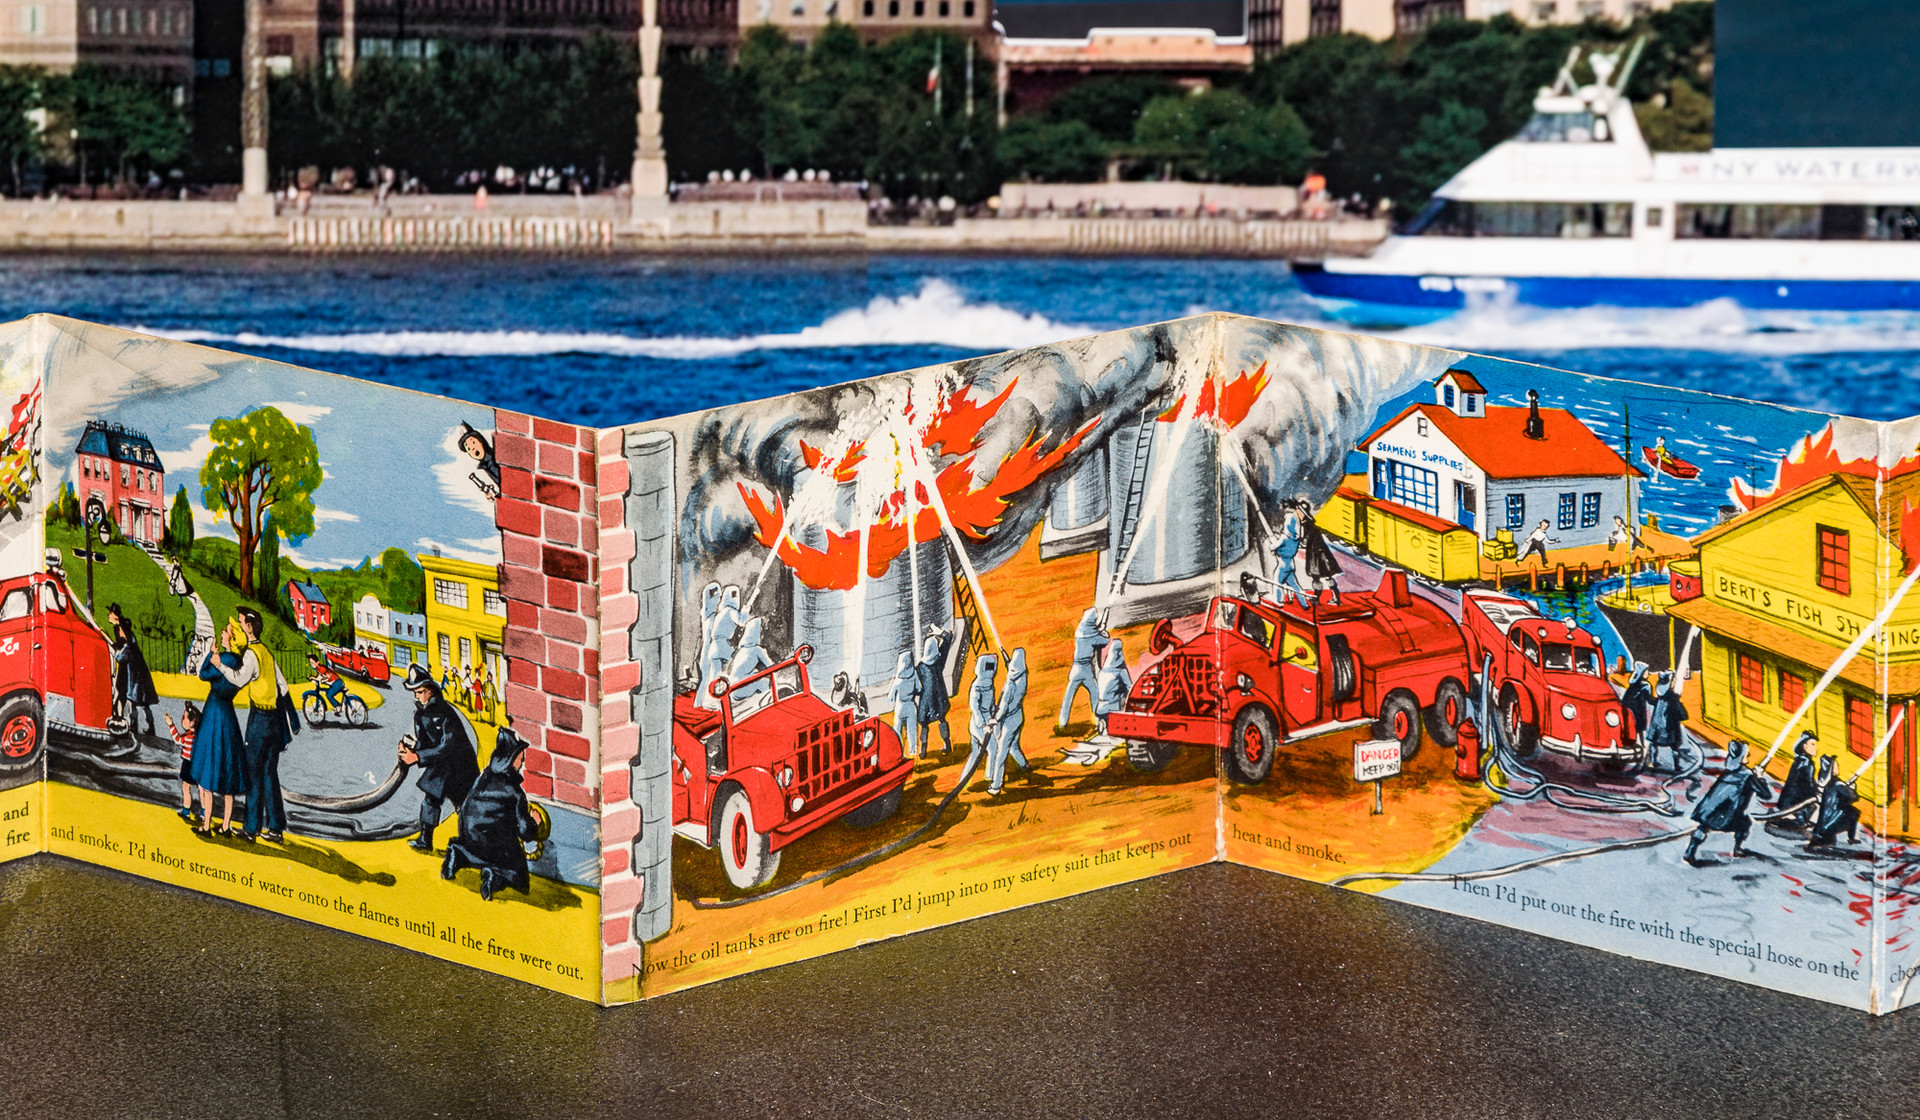 (Pages 7-9.) Fire now has spread to the urban waterfront. Water pictured at top of page 9 helps visually integrate book with tableau panel directly in back picturing Hudson River.